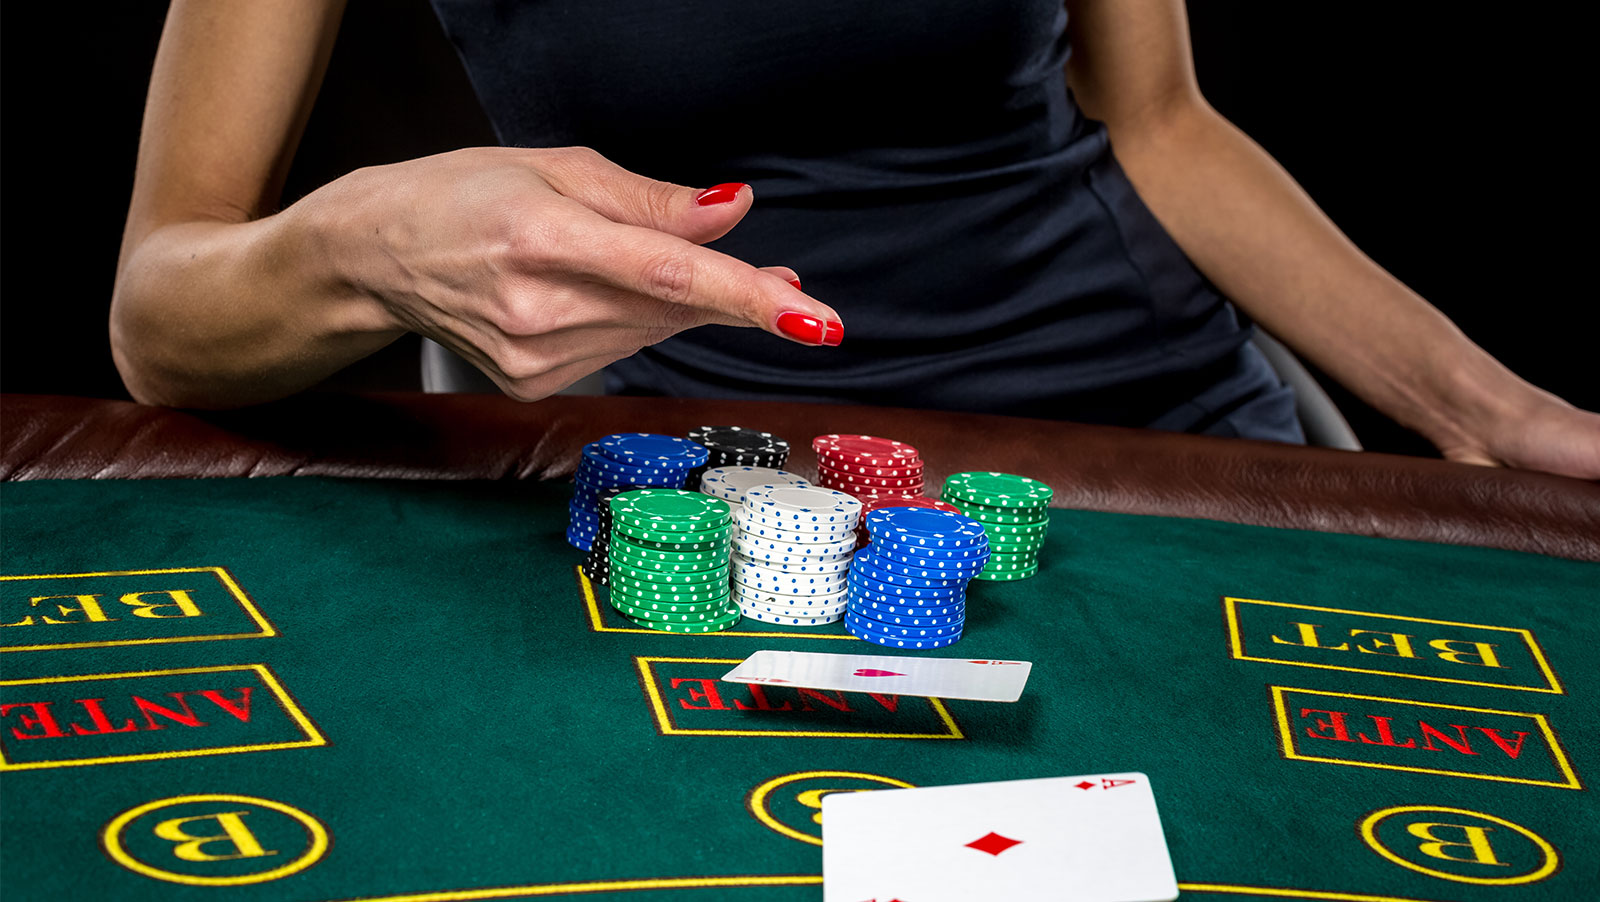 WPT Women's Poker Summit focuses on resolving industry challenges